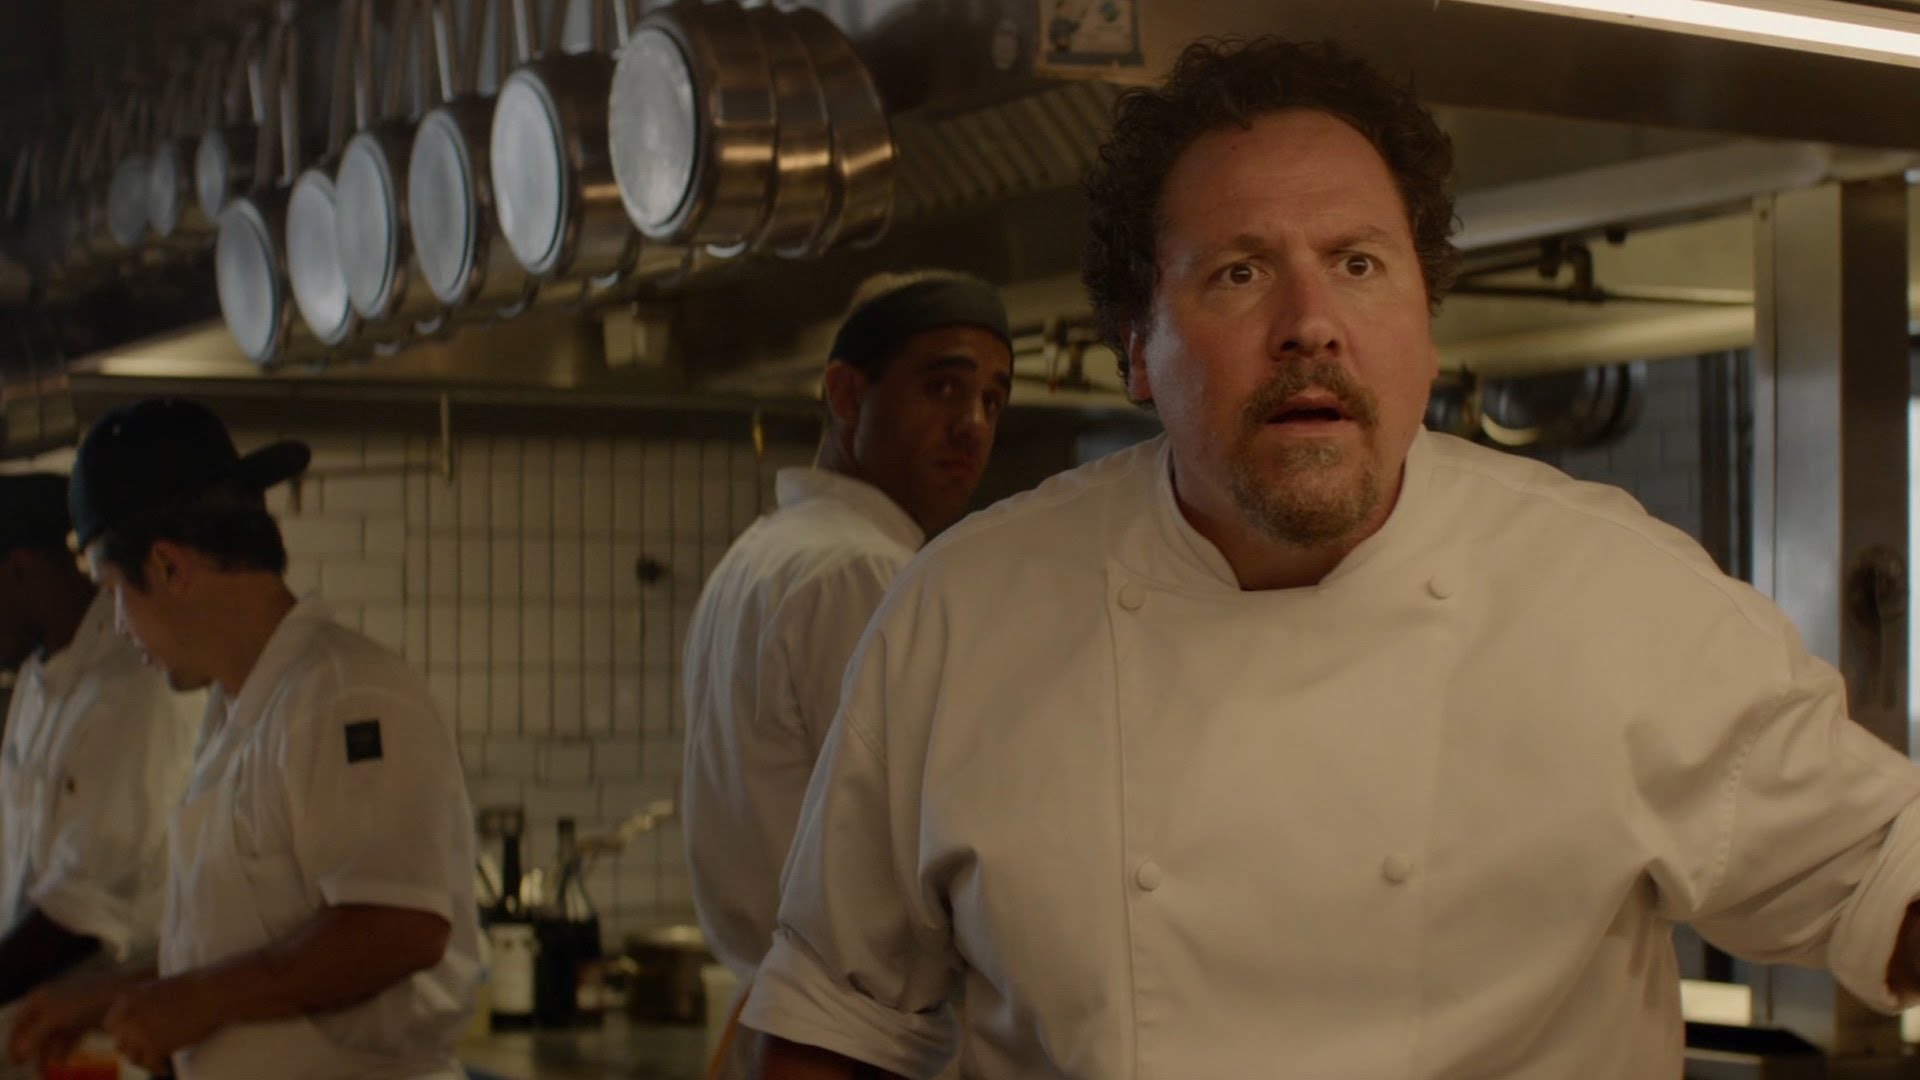 Chef (2014) - The Book, The Film, The T-ShirtThe Book, The Film, The T-Shirt